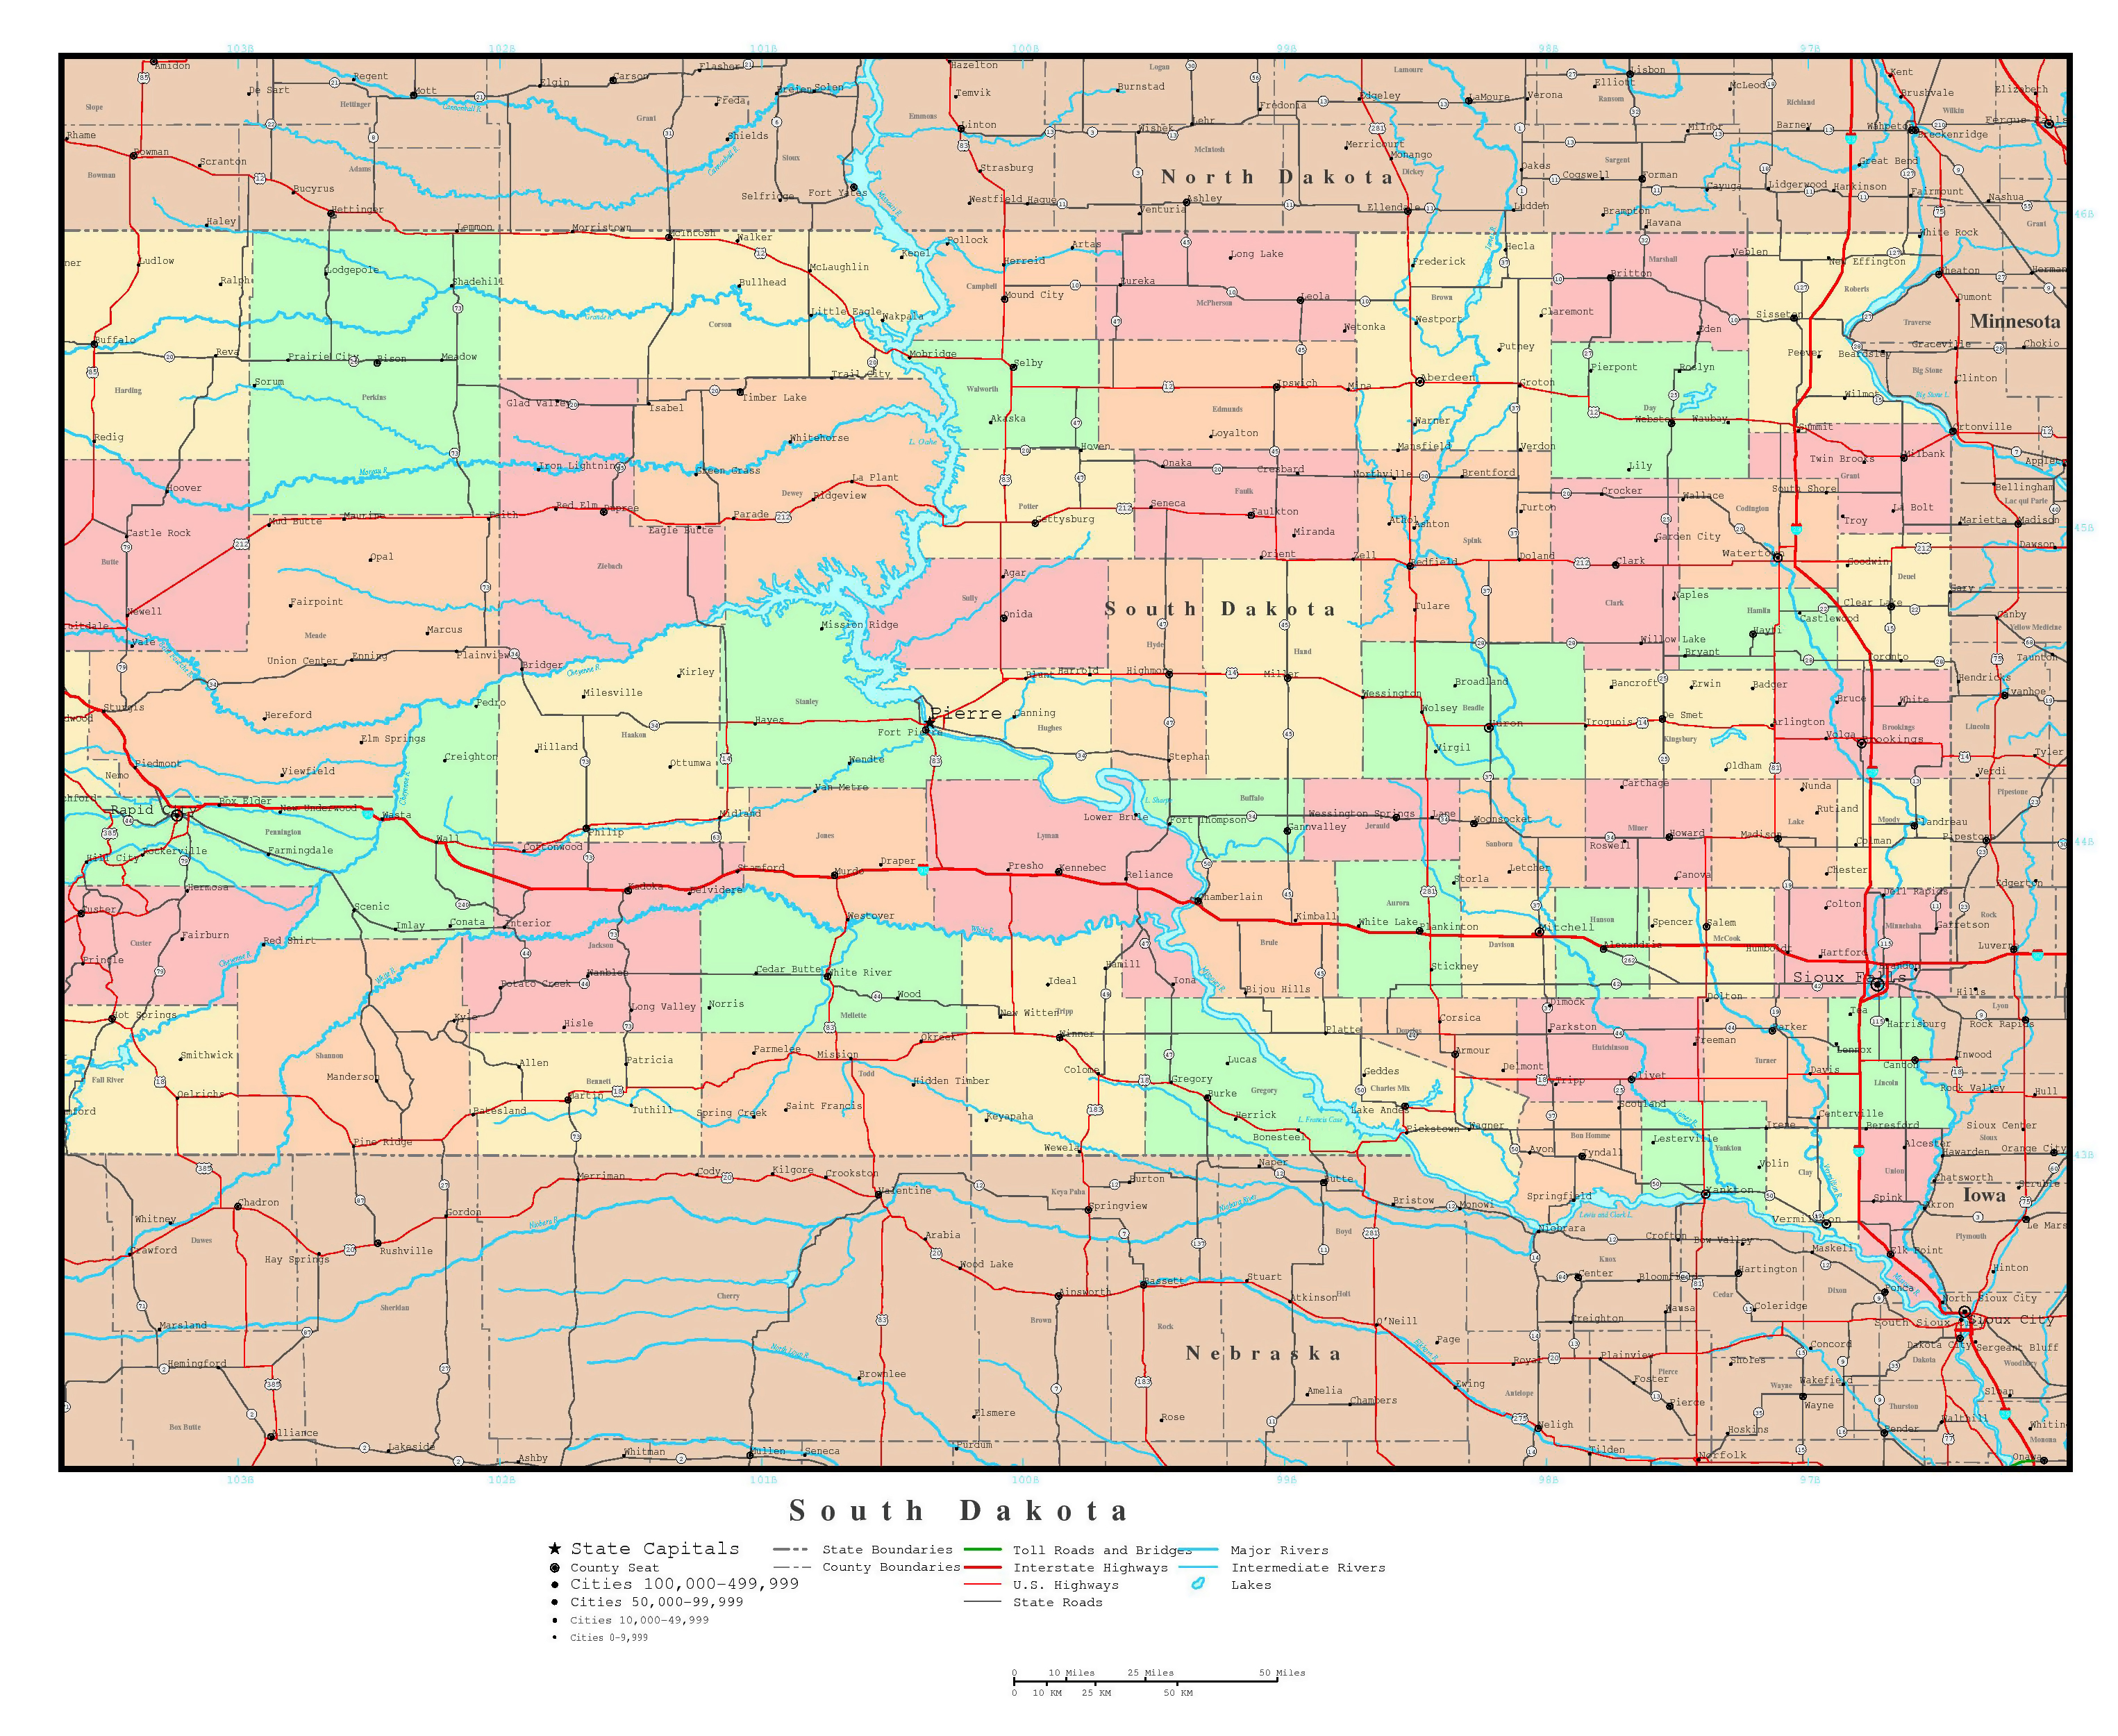 Large Detailed Administrative Map Of South Dakota State With Roads - Map usa south